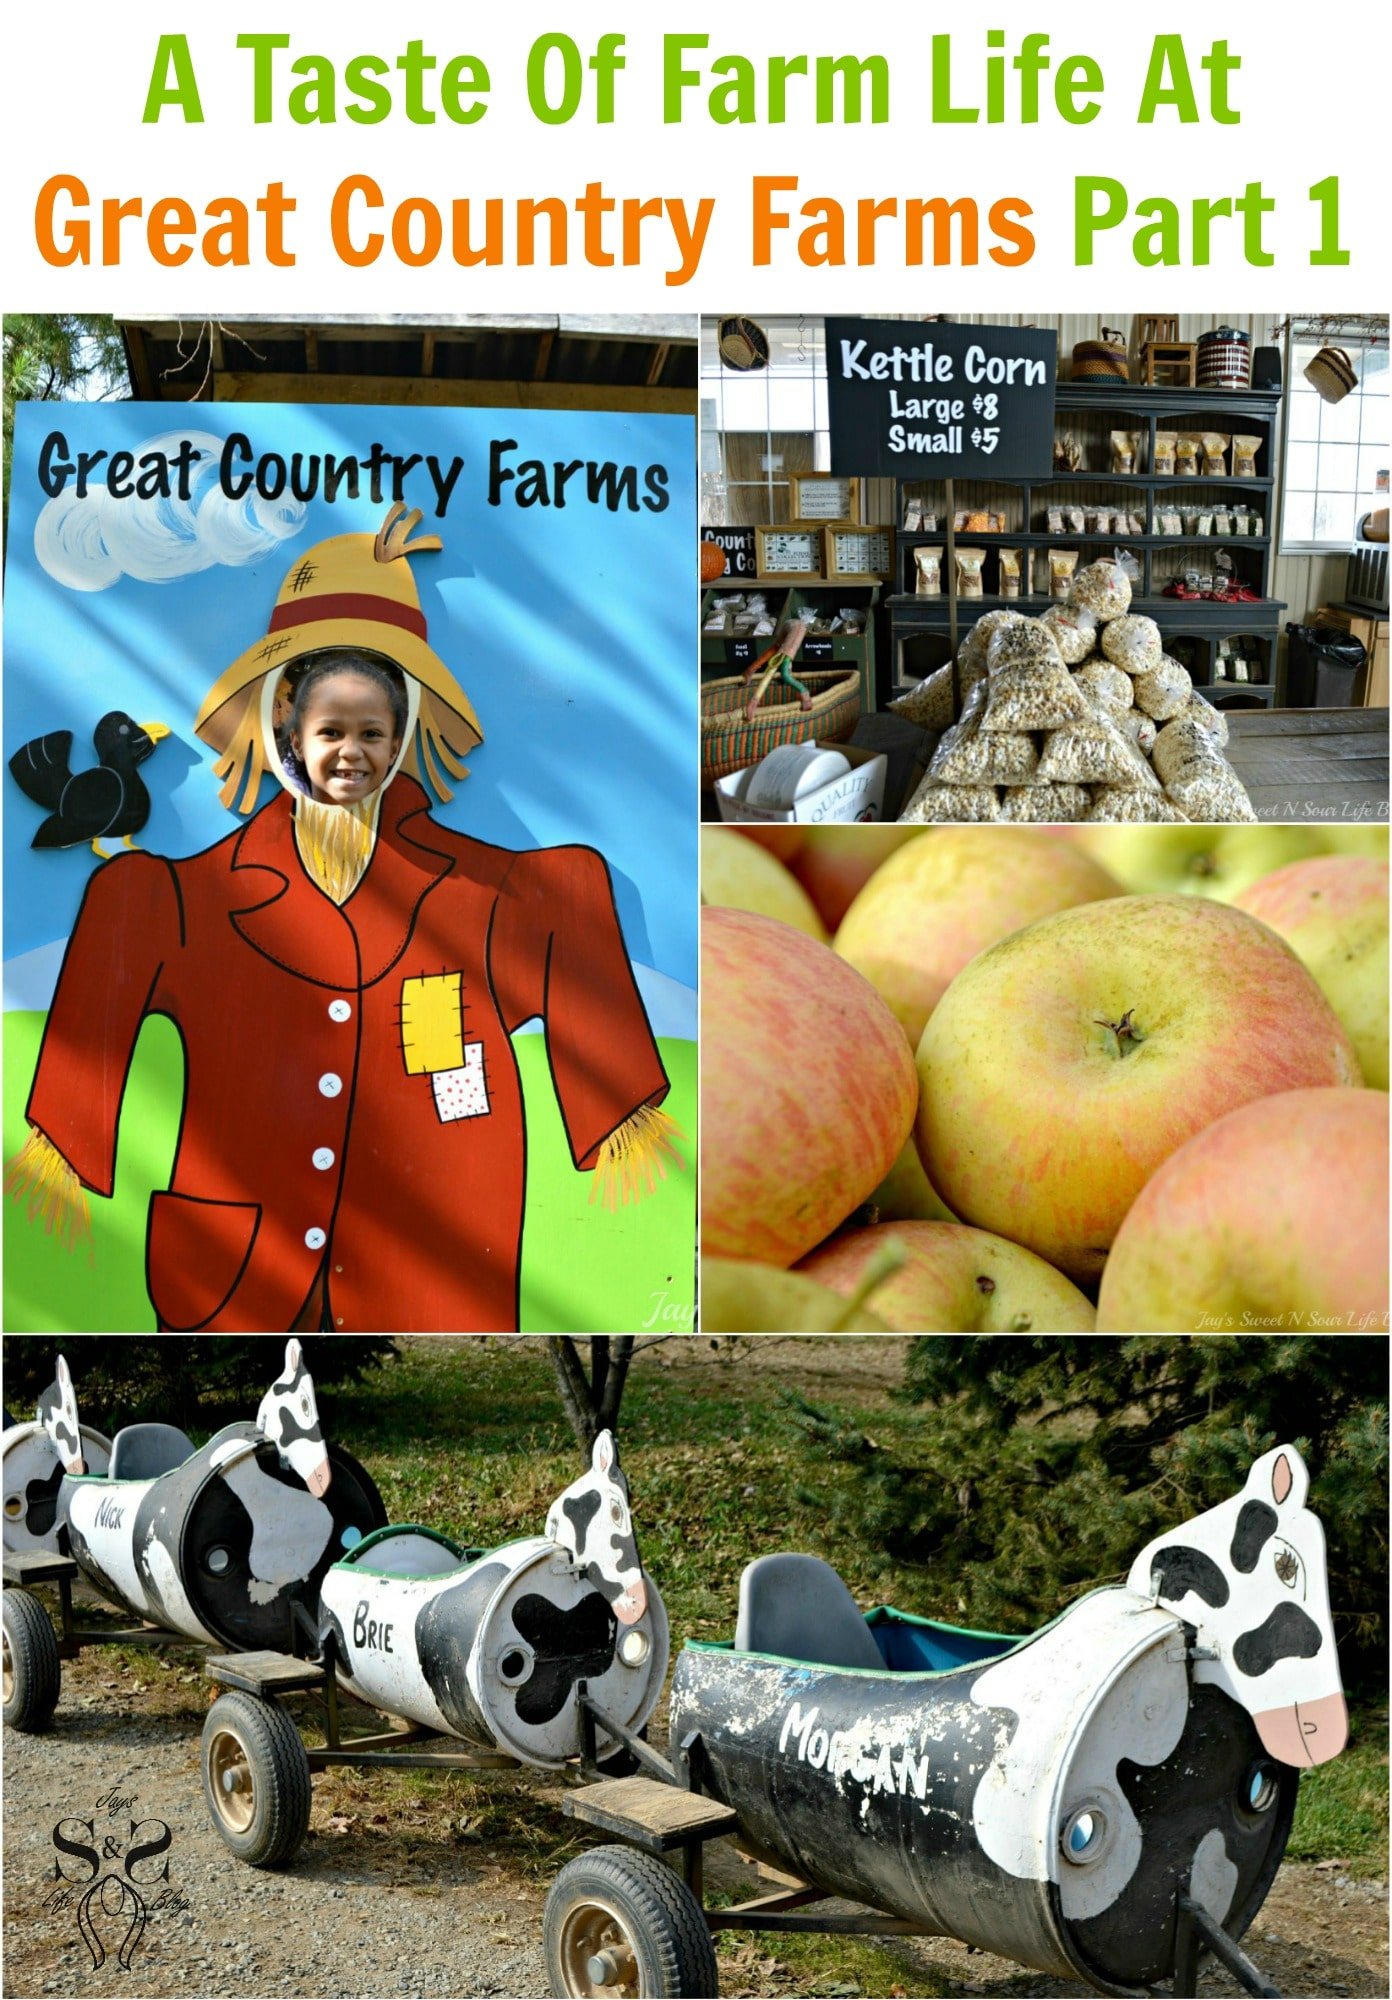 A Taste Of Farm Life At The Great Country Farms Part 1